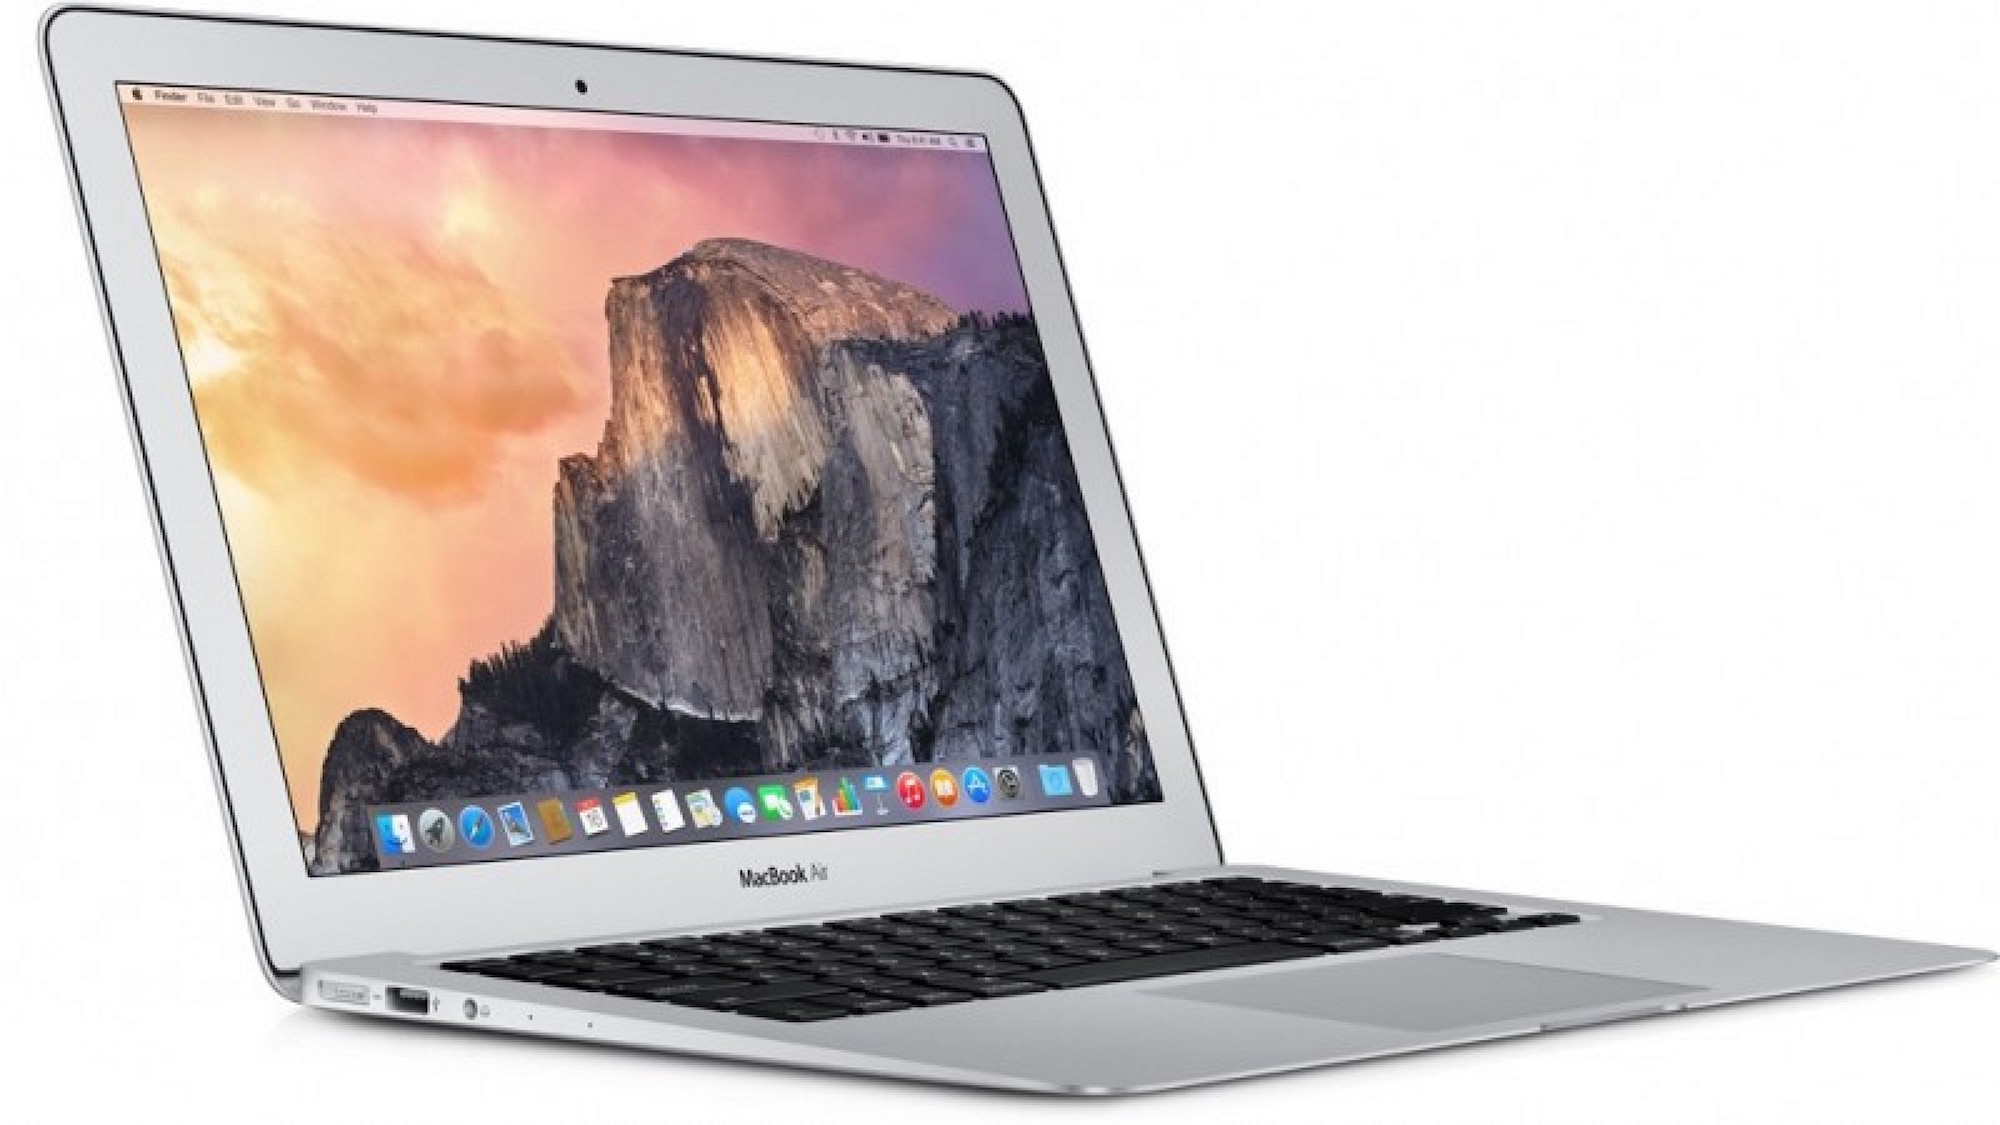 MacBook Air with improved SSD